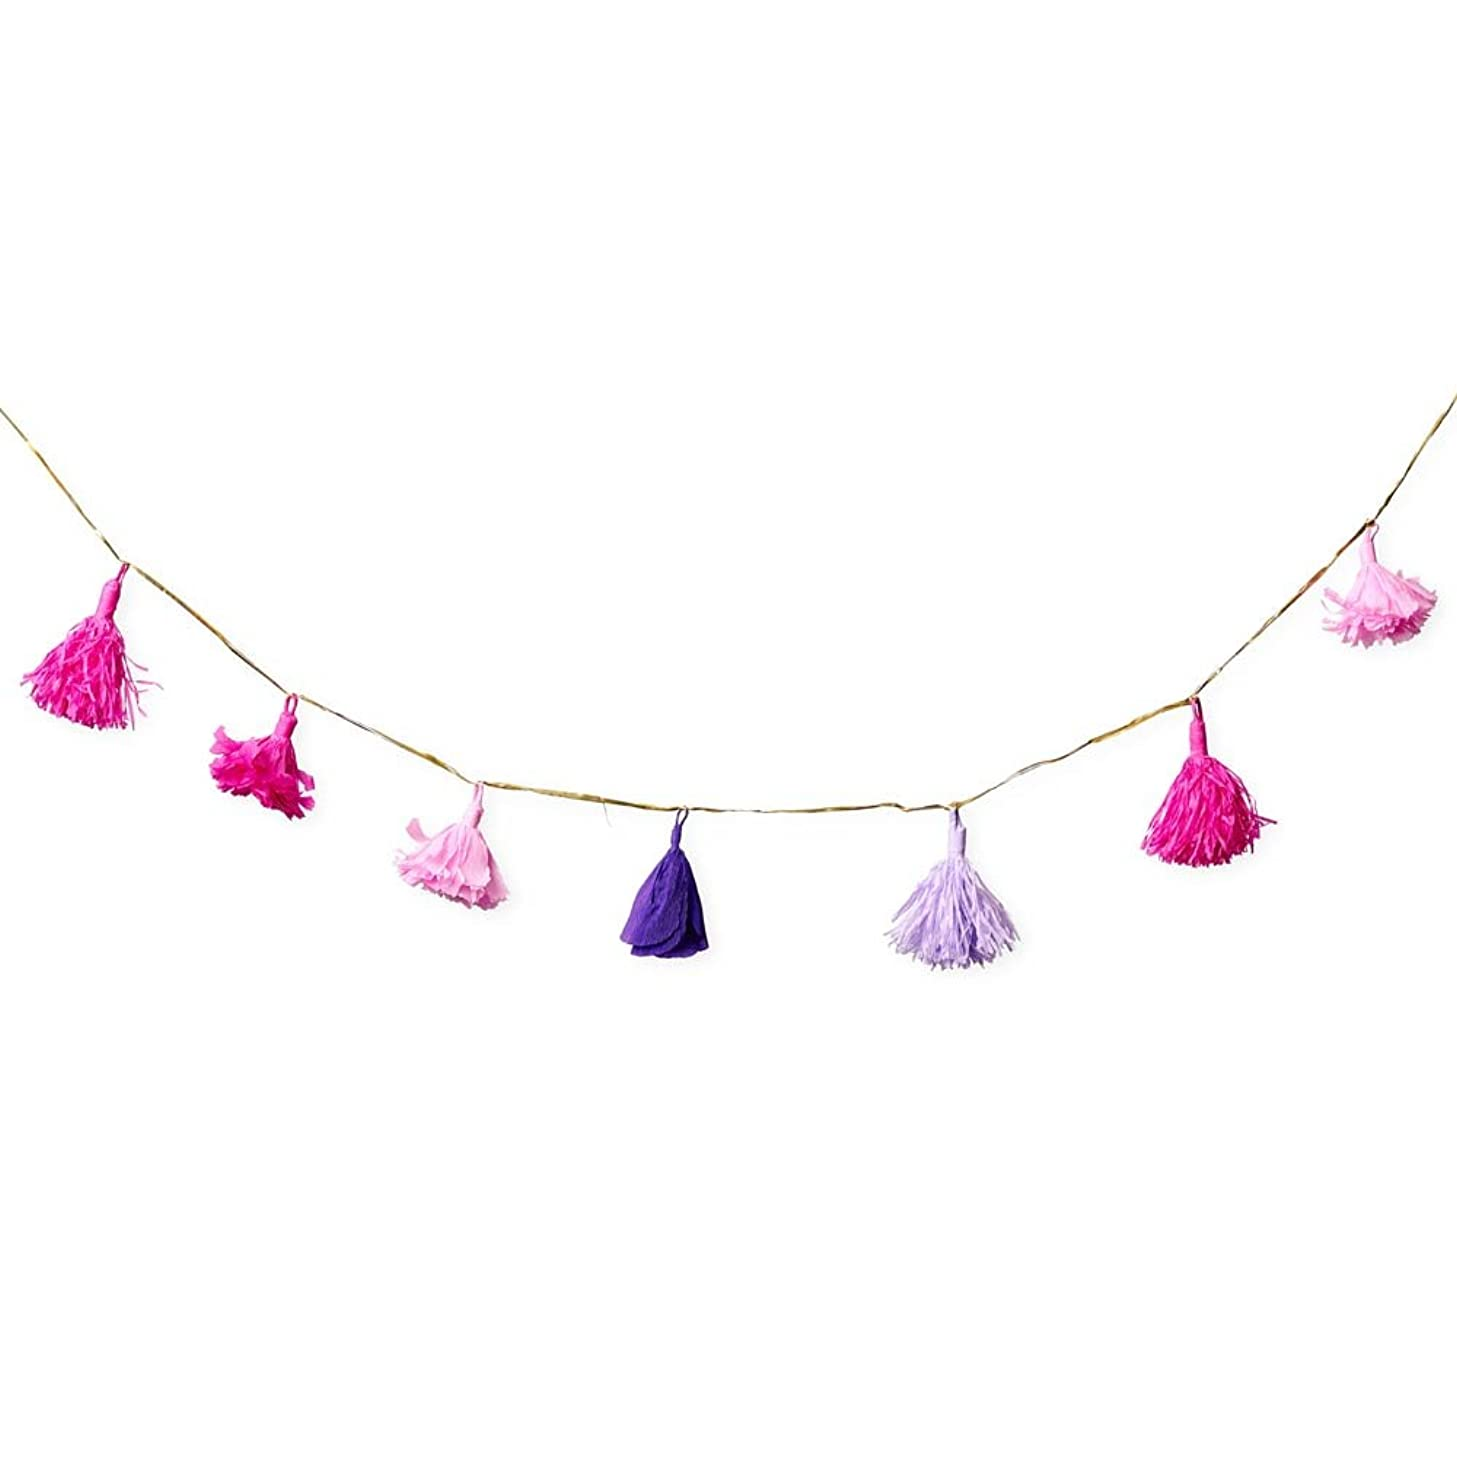 UNELEFANTE Handmade Crepe Flower Garland (6.29 ft Long), 7 Flowers per Garland. Ideal for Party Decoraions. Color : Pink/Purple. No Assembly Needed.